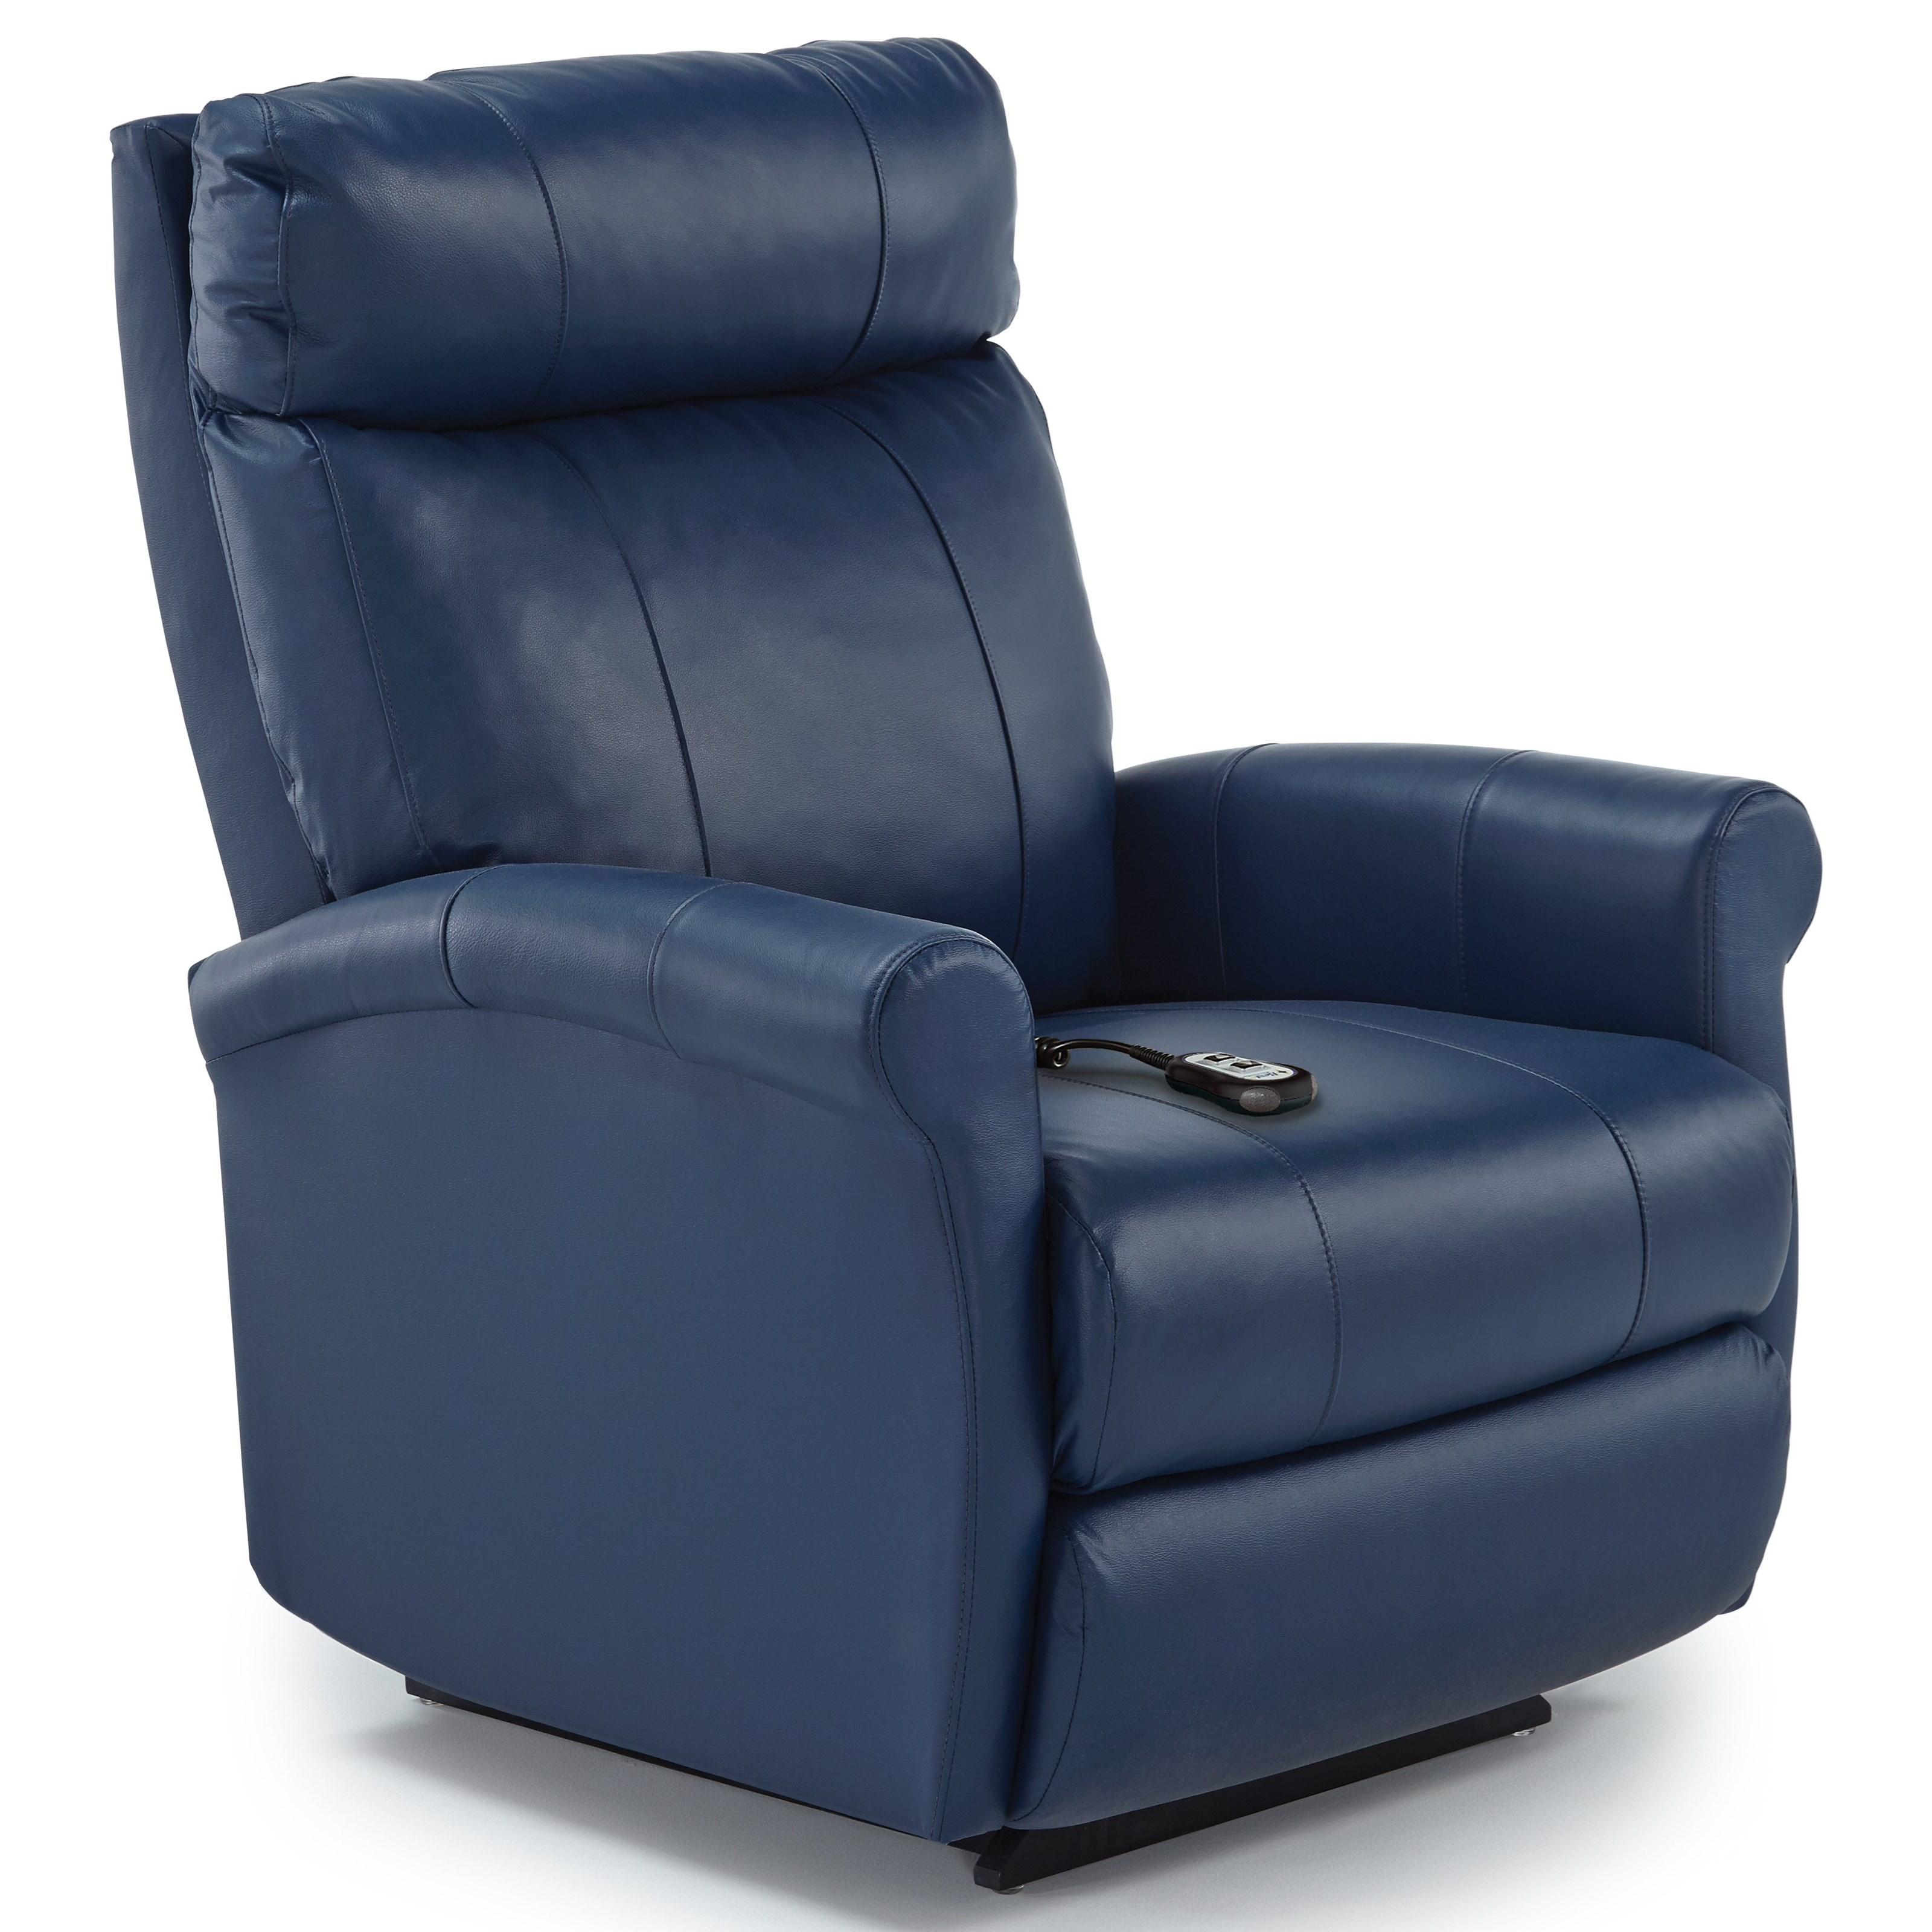 Best home furnishings recliners petite power lift for Recliner lift chair